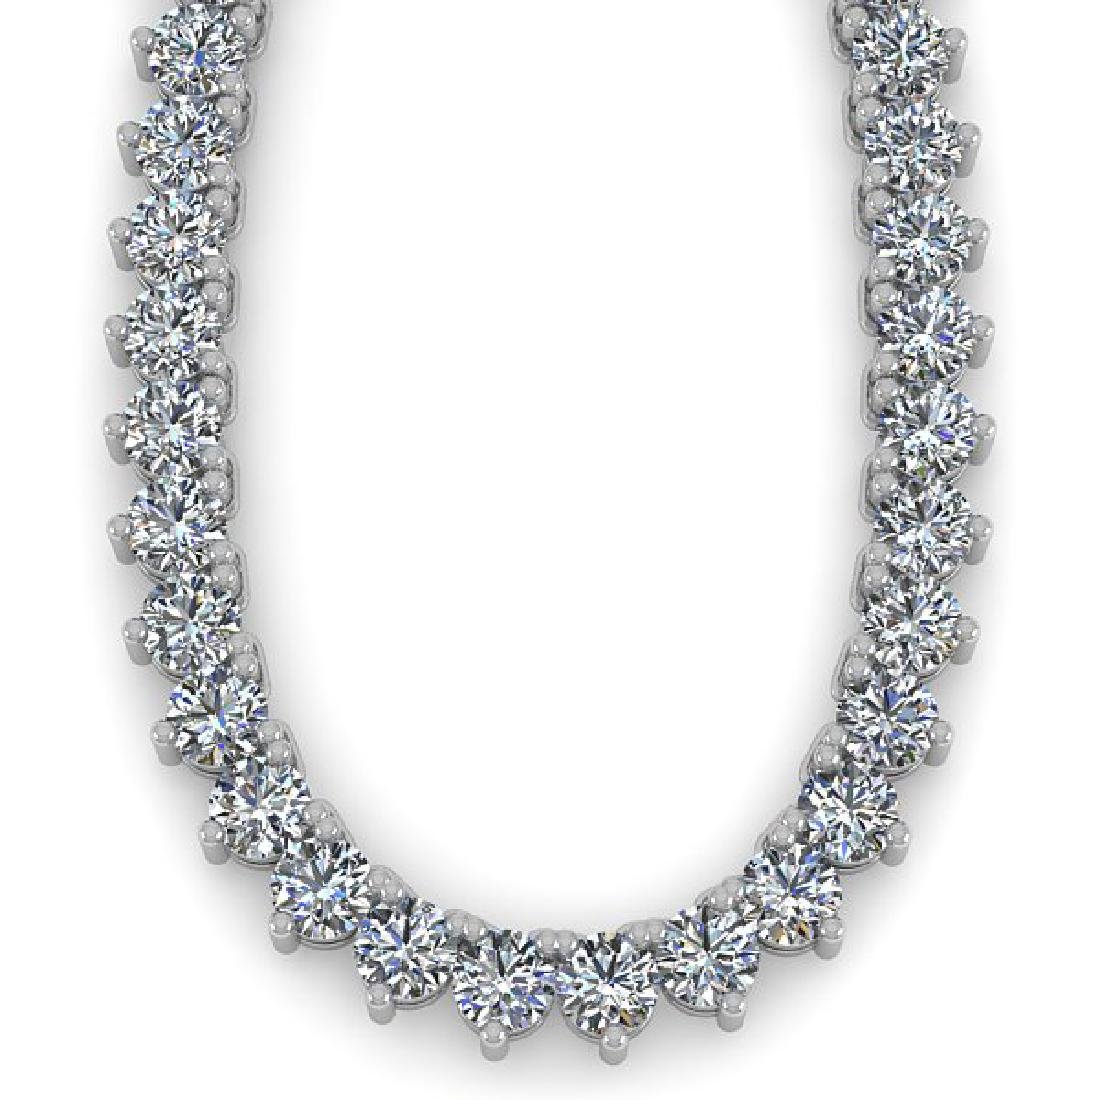 38 CTW Solitaire SI Diamond Necklace 14K White Gold - 2